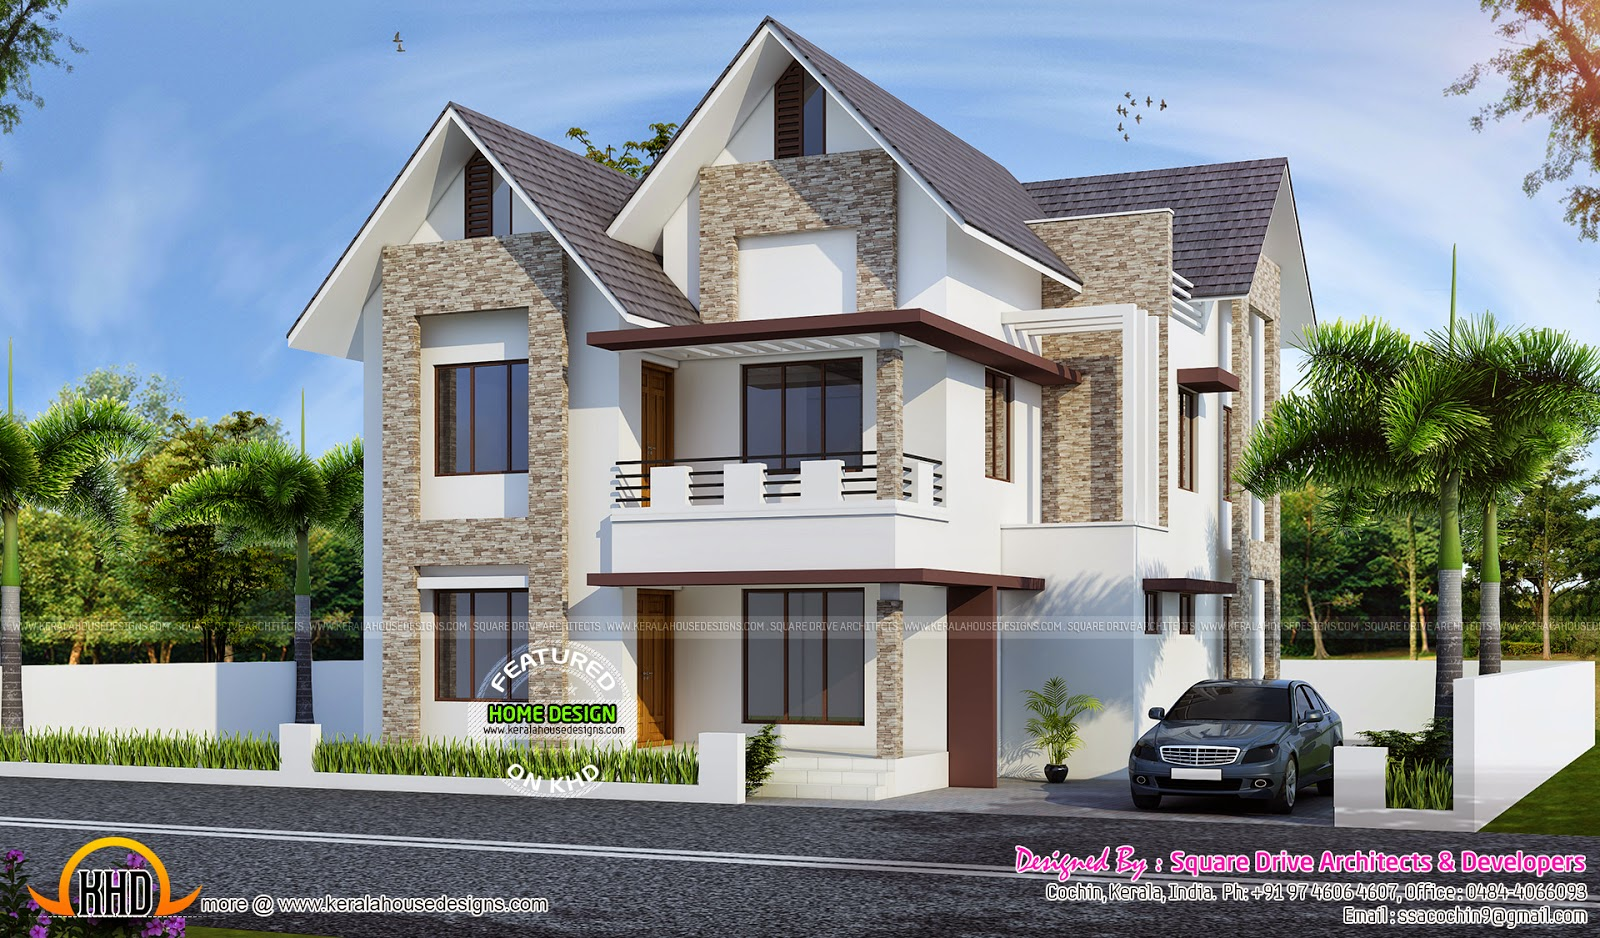 European style sloping roof house kerala home design and for European style house